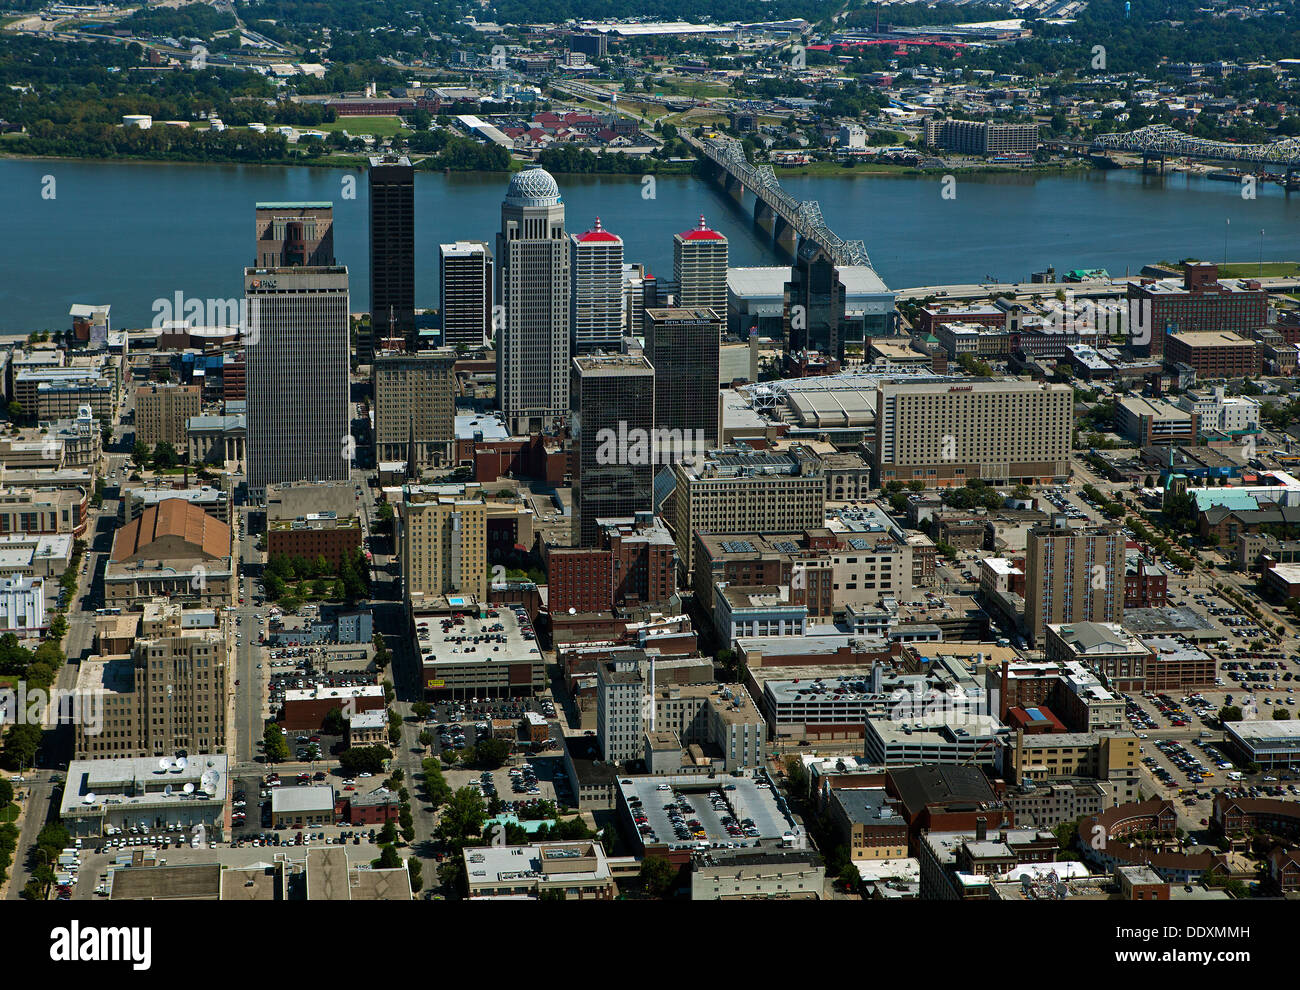 aerial photograph downtown Louisville, Kentucky - Stock Image